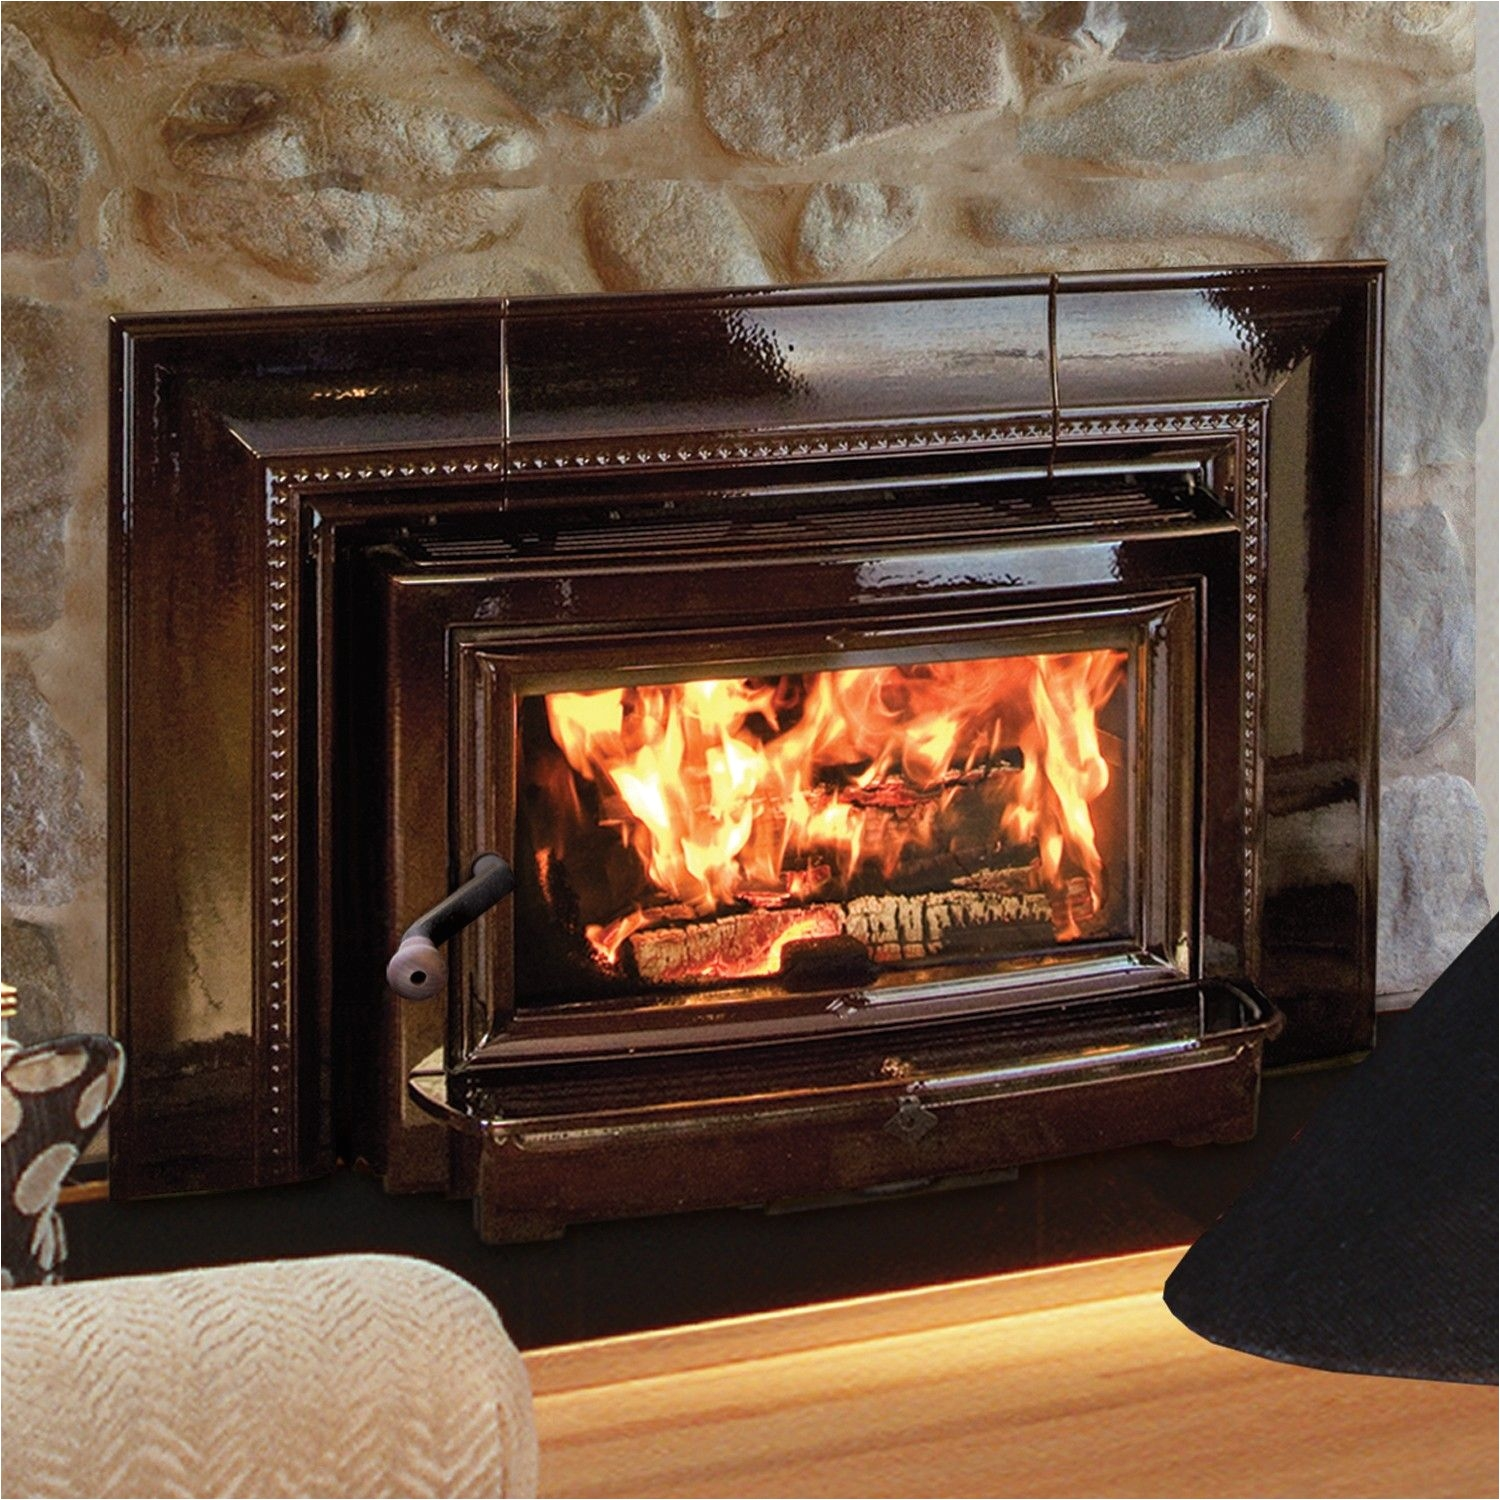 used wood burning fireplace inserts for sale hearthstone insert rh bradshomefurnishings com fireplace wood for sale in ct fireplace wood for sale in minnesota